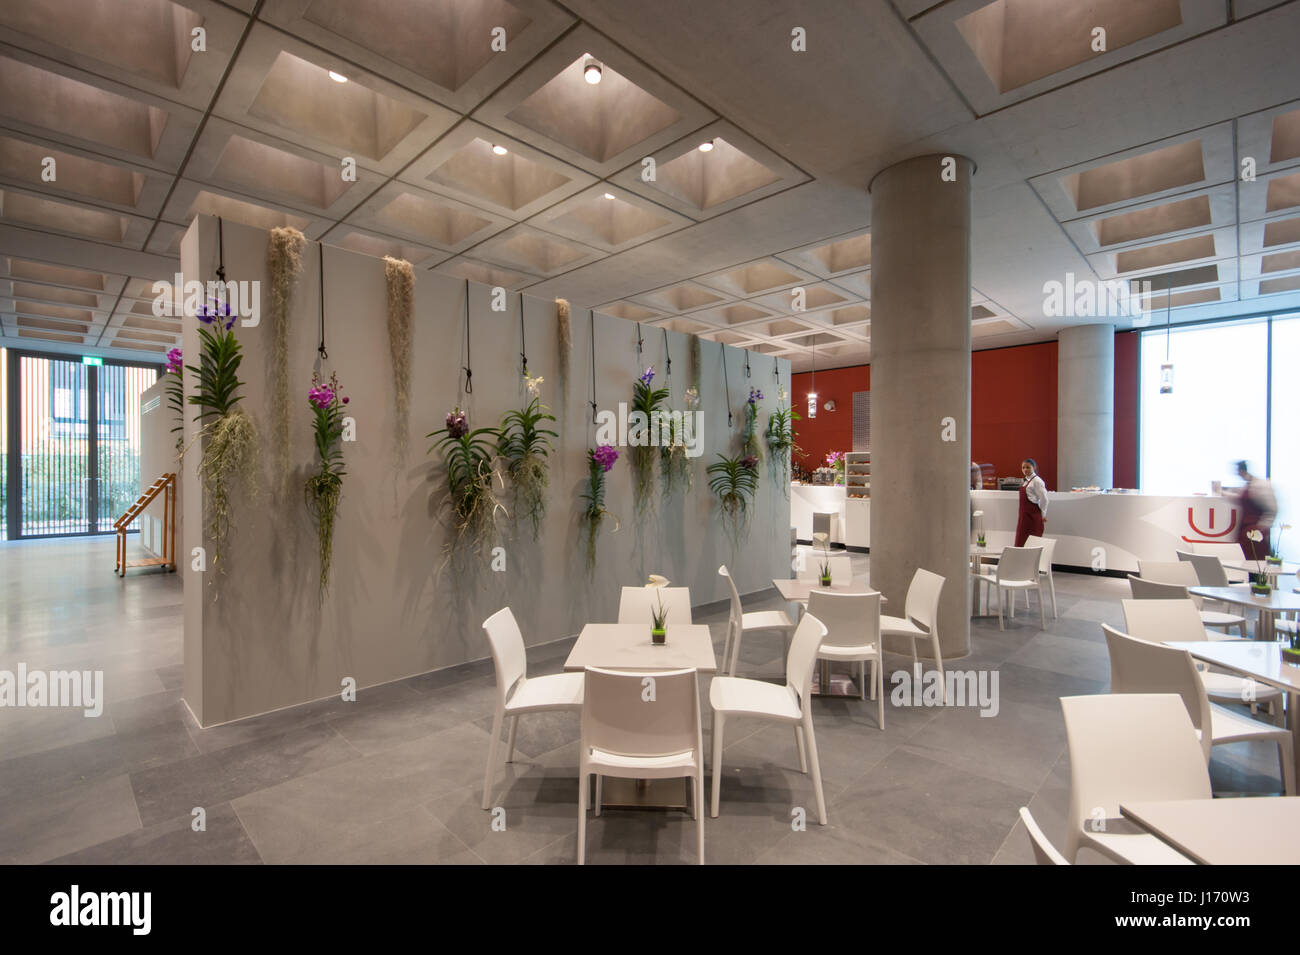 MUDEC – Museum of Cultures in Milan, designed by David Chipperfield Architects - cafe - interior view - Stock Image